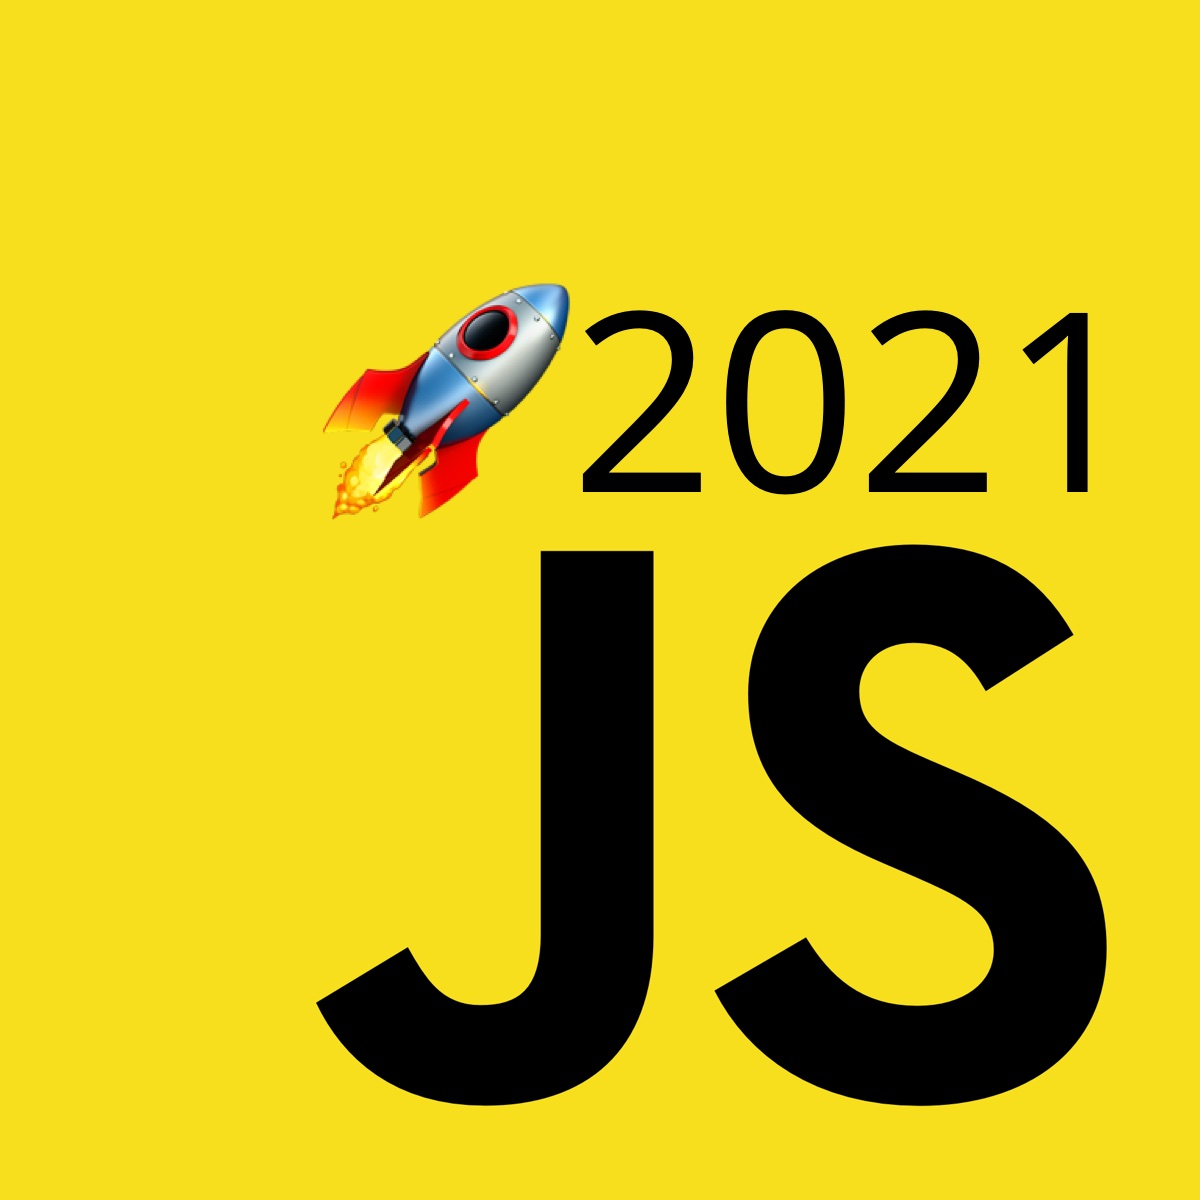 images/whats-new-in-javascript-es12.jpg